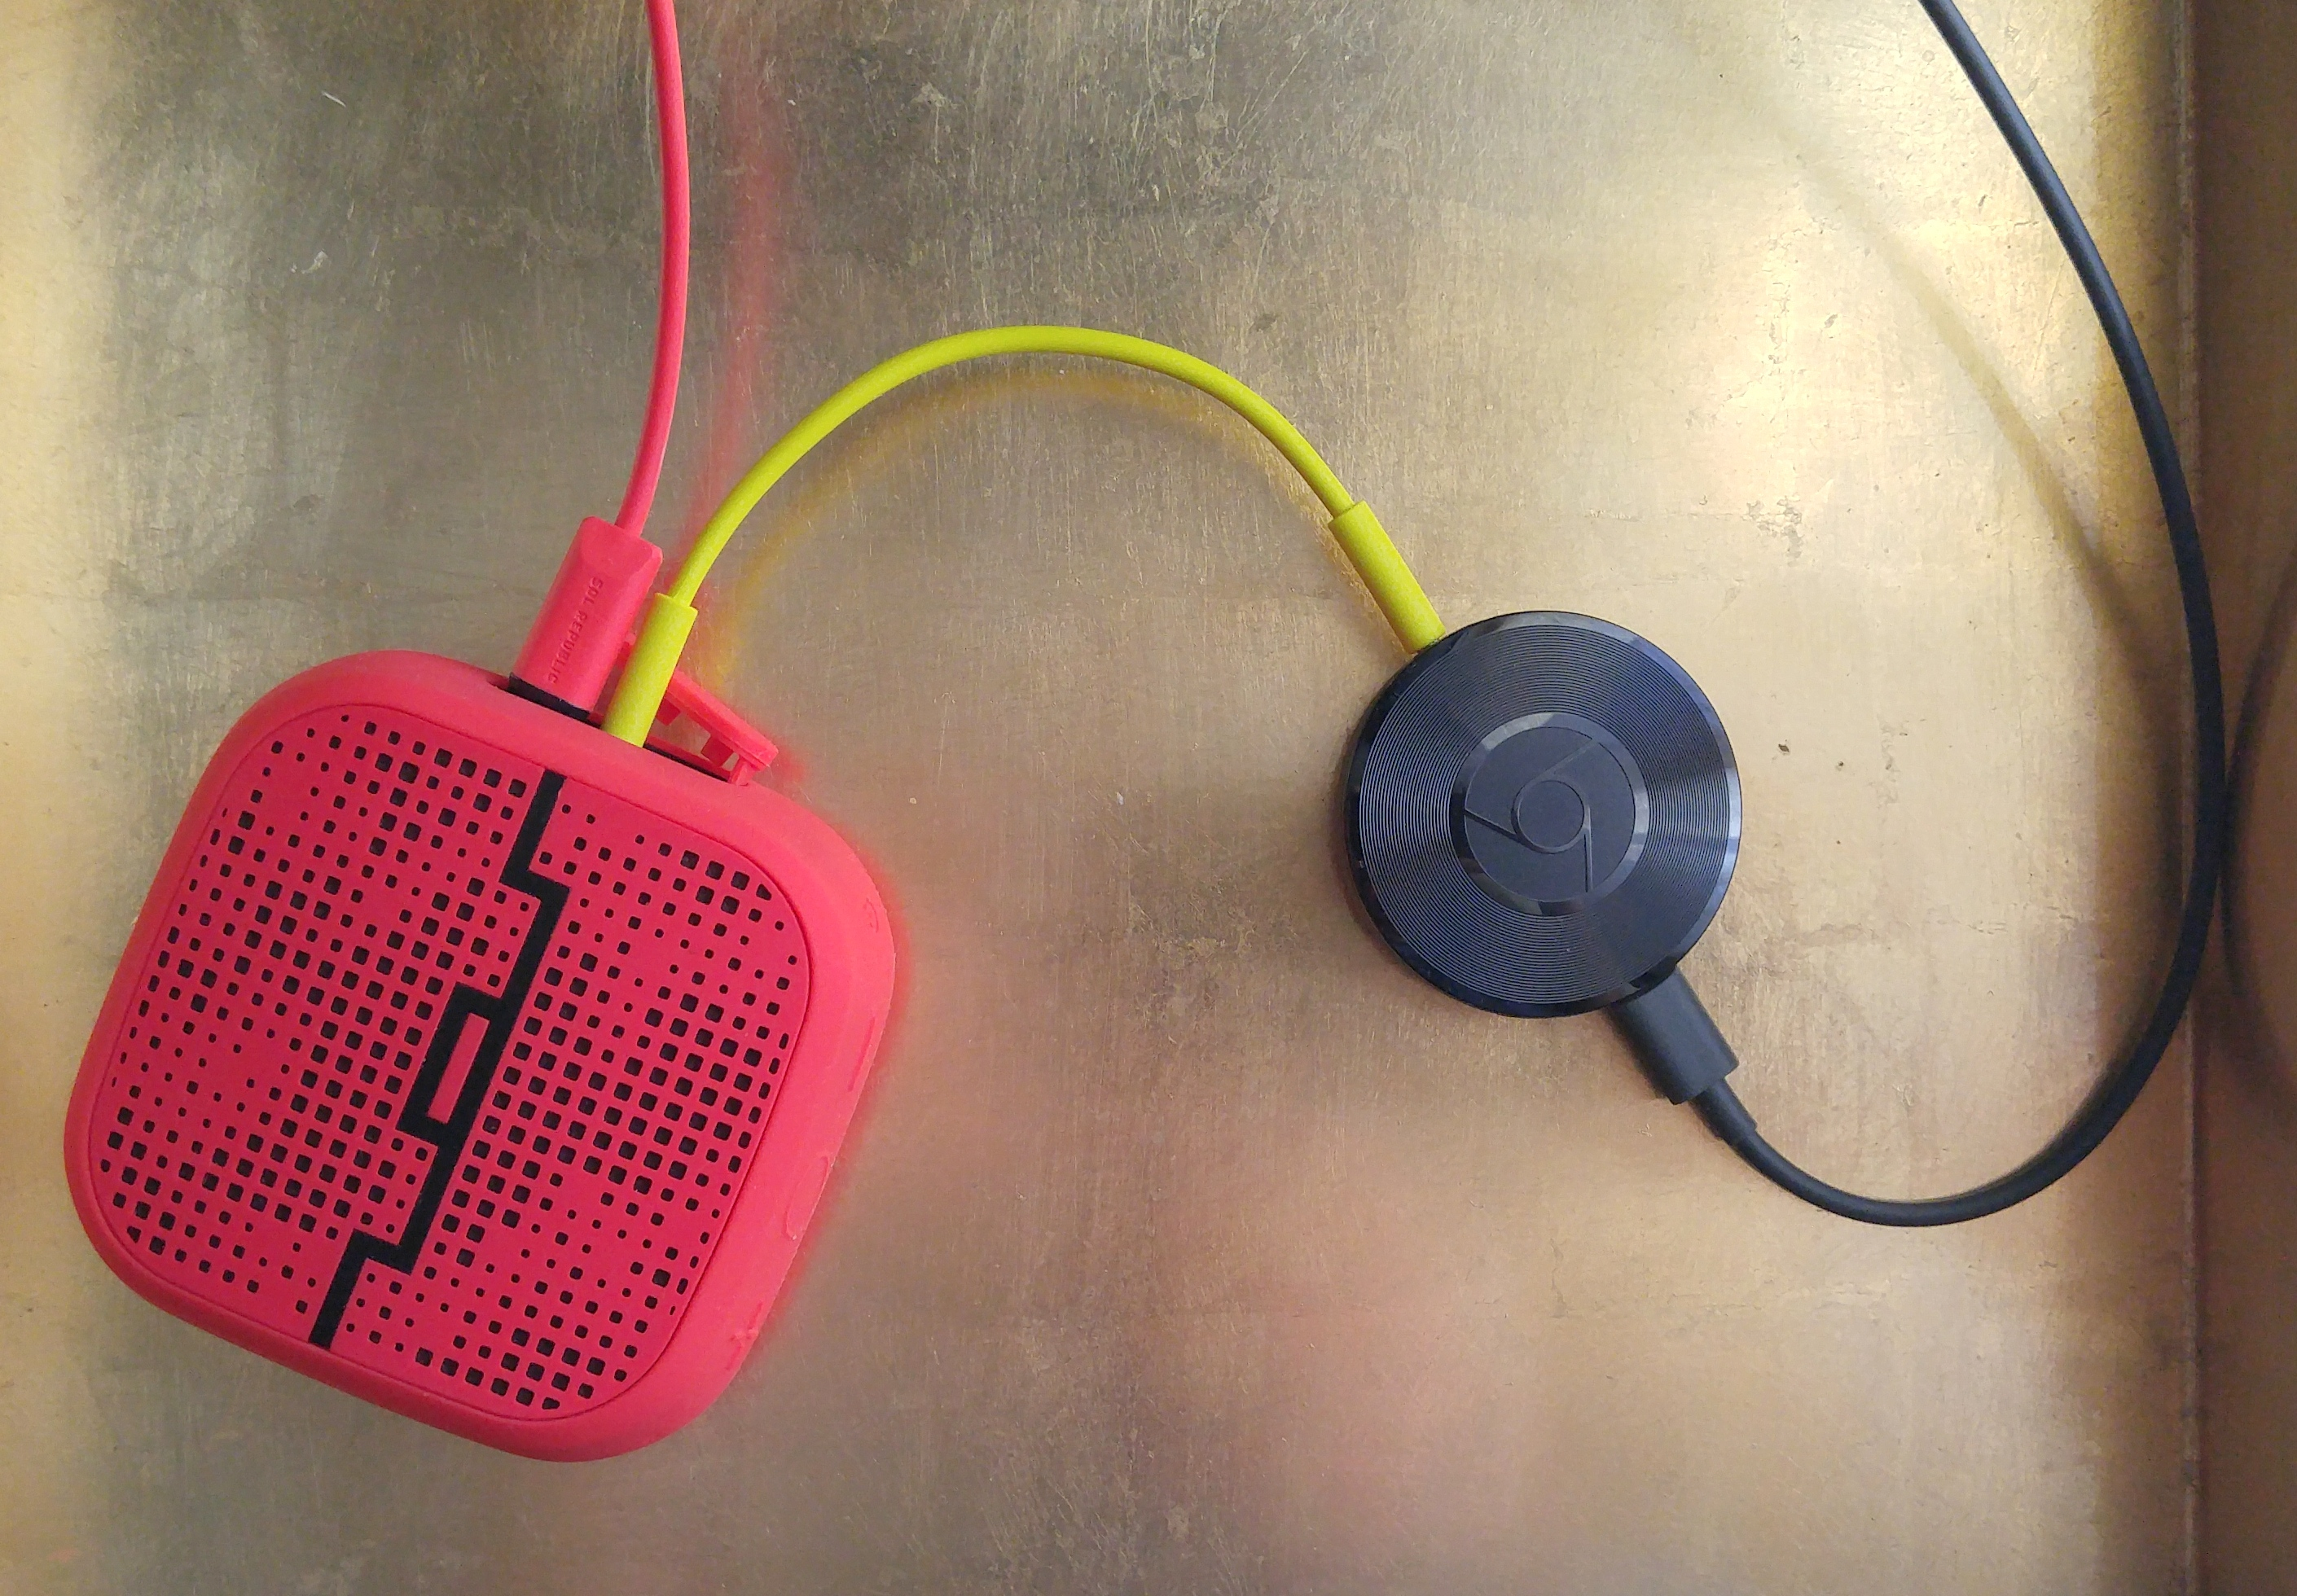 Google Chromecast Audio – Cast Your Favorite Music to Your Speakers